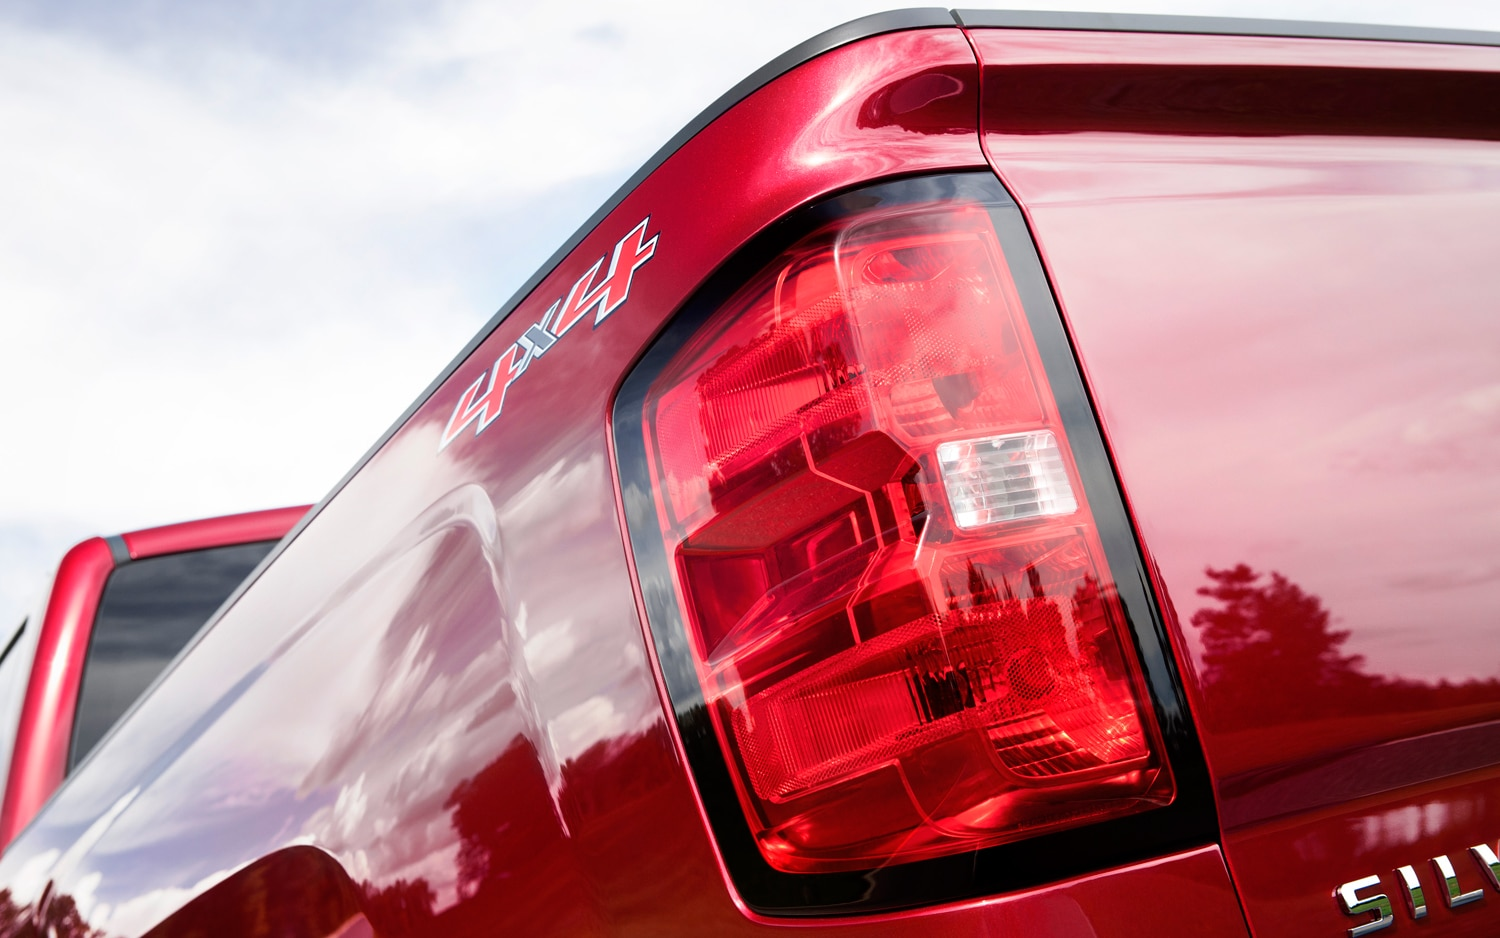 2014 Chevrolet Silverado Tail Light